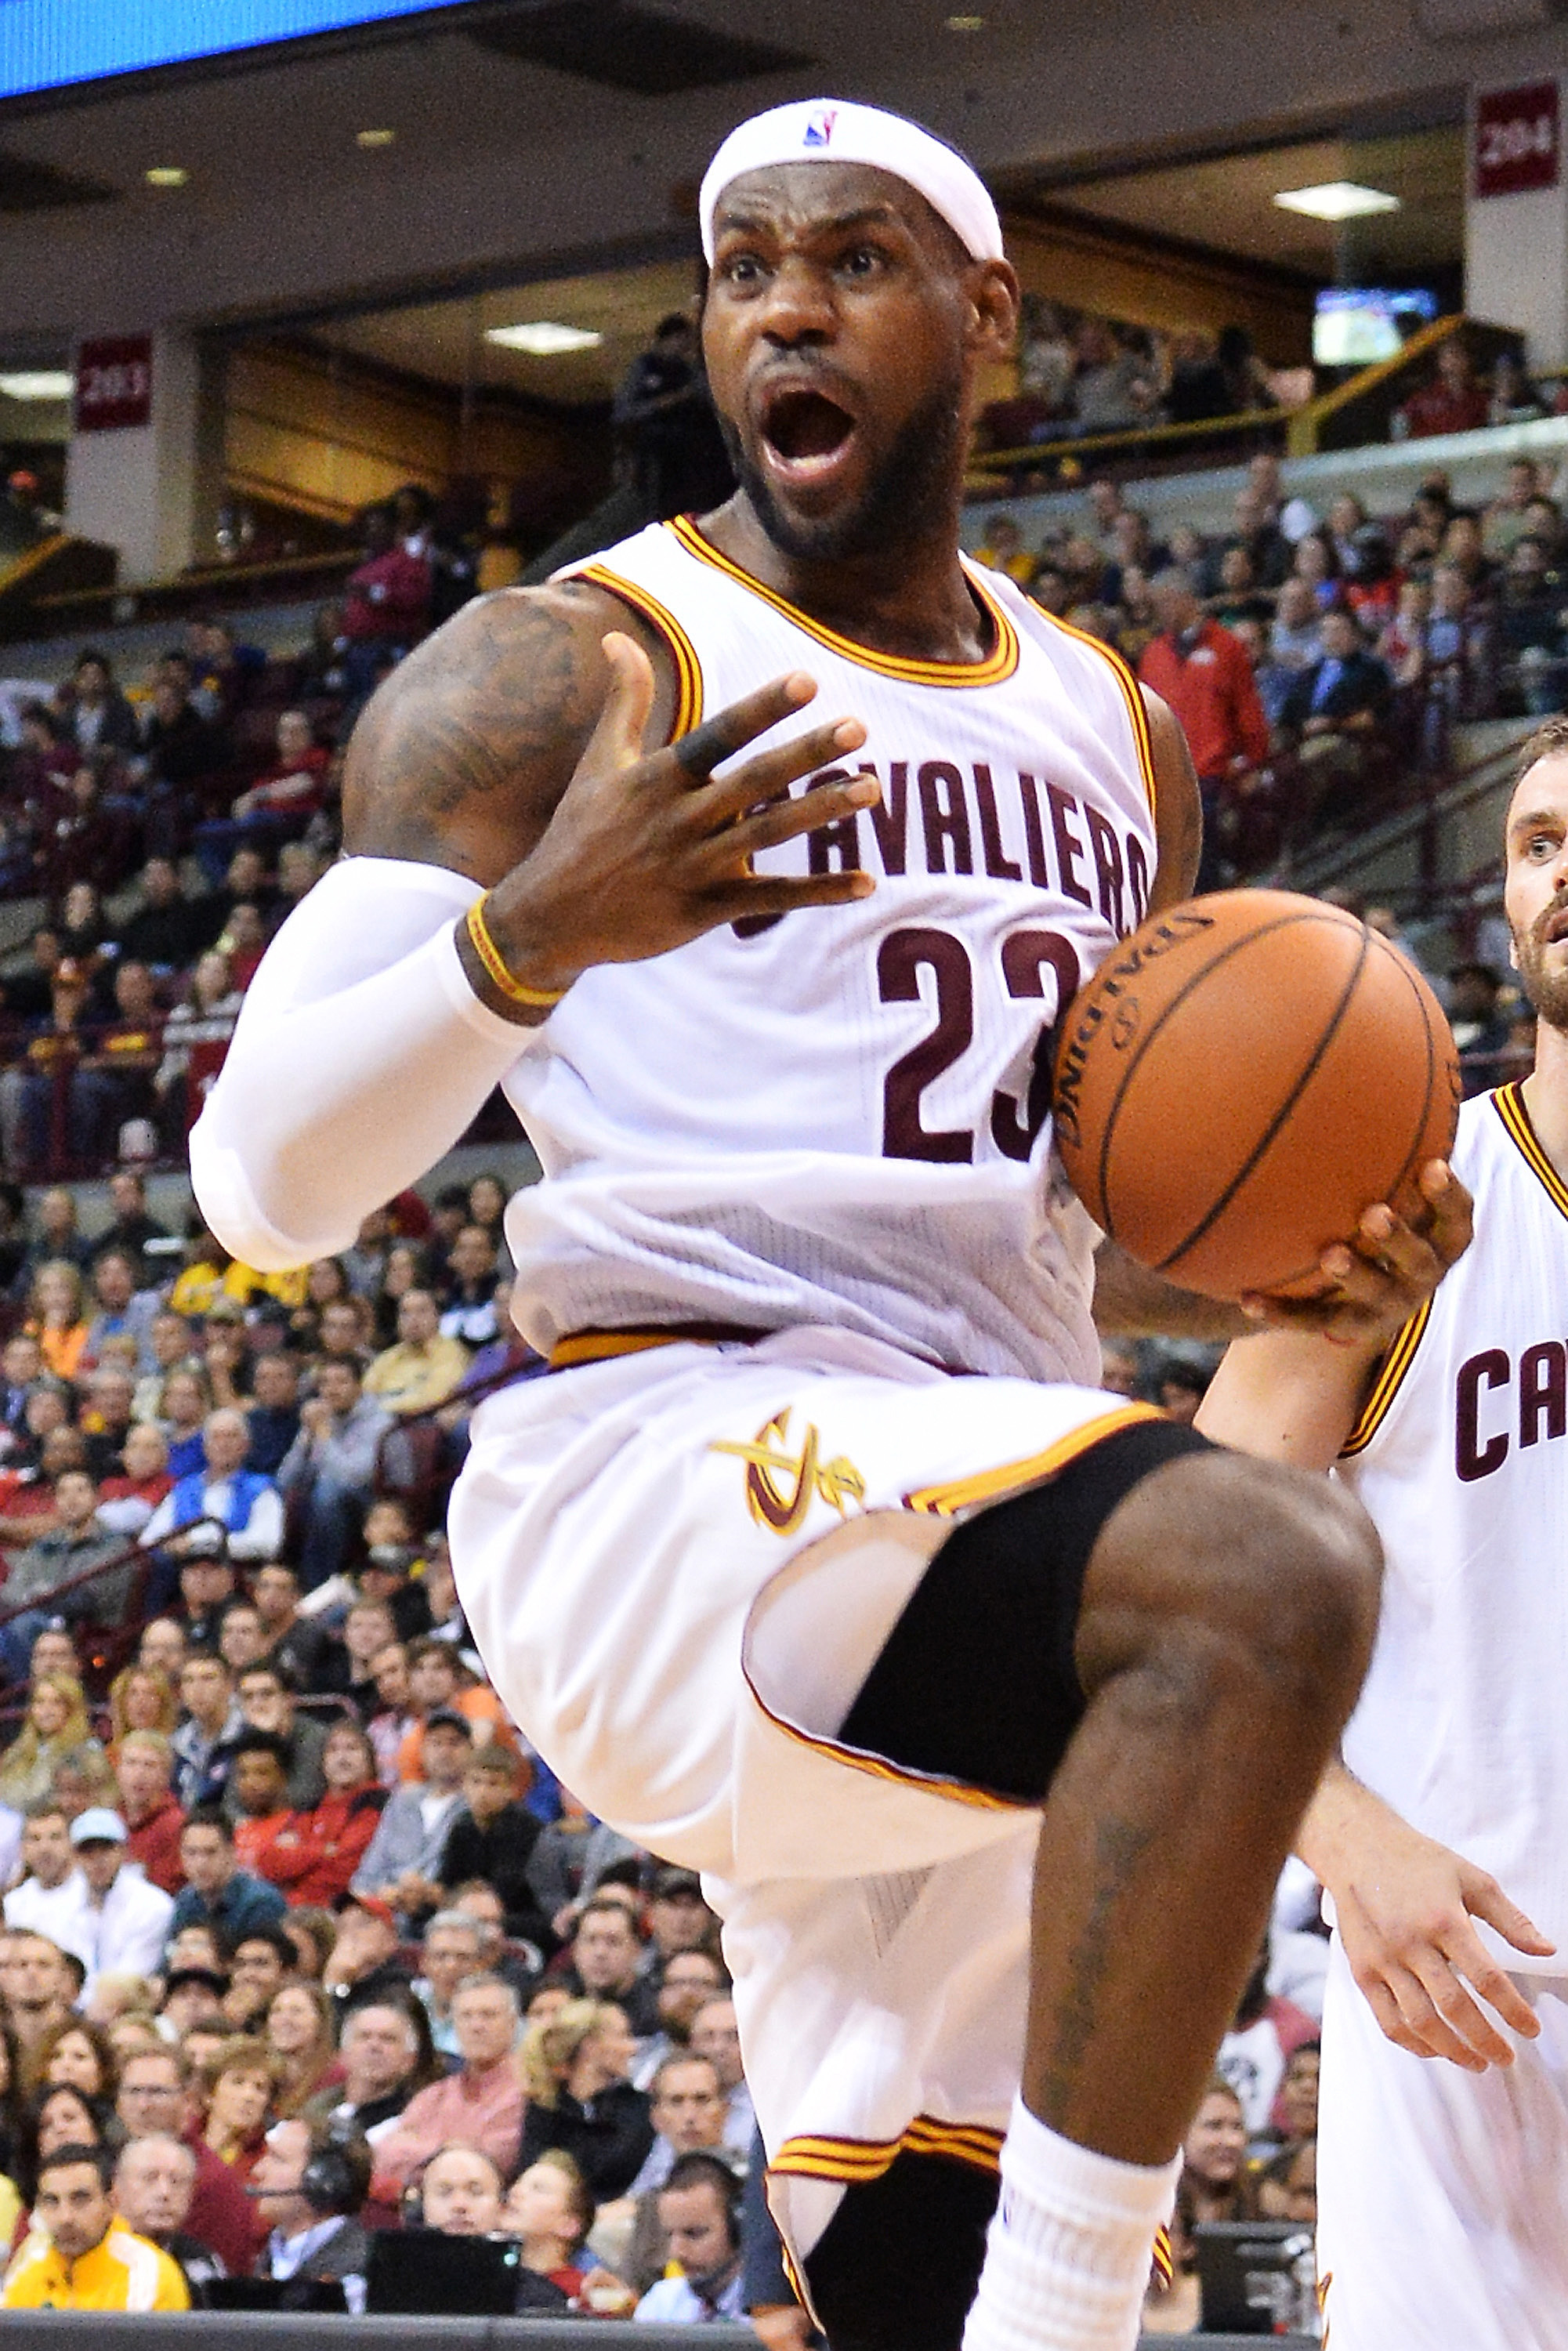 958a155eefea FemaleFan » Cavs Cruise To Win In Game 2